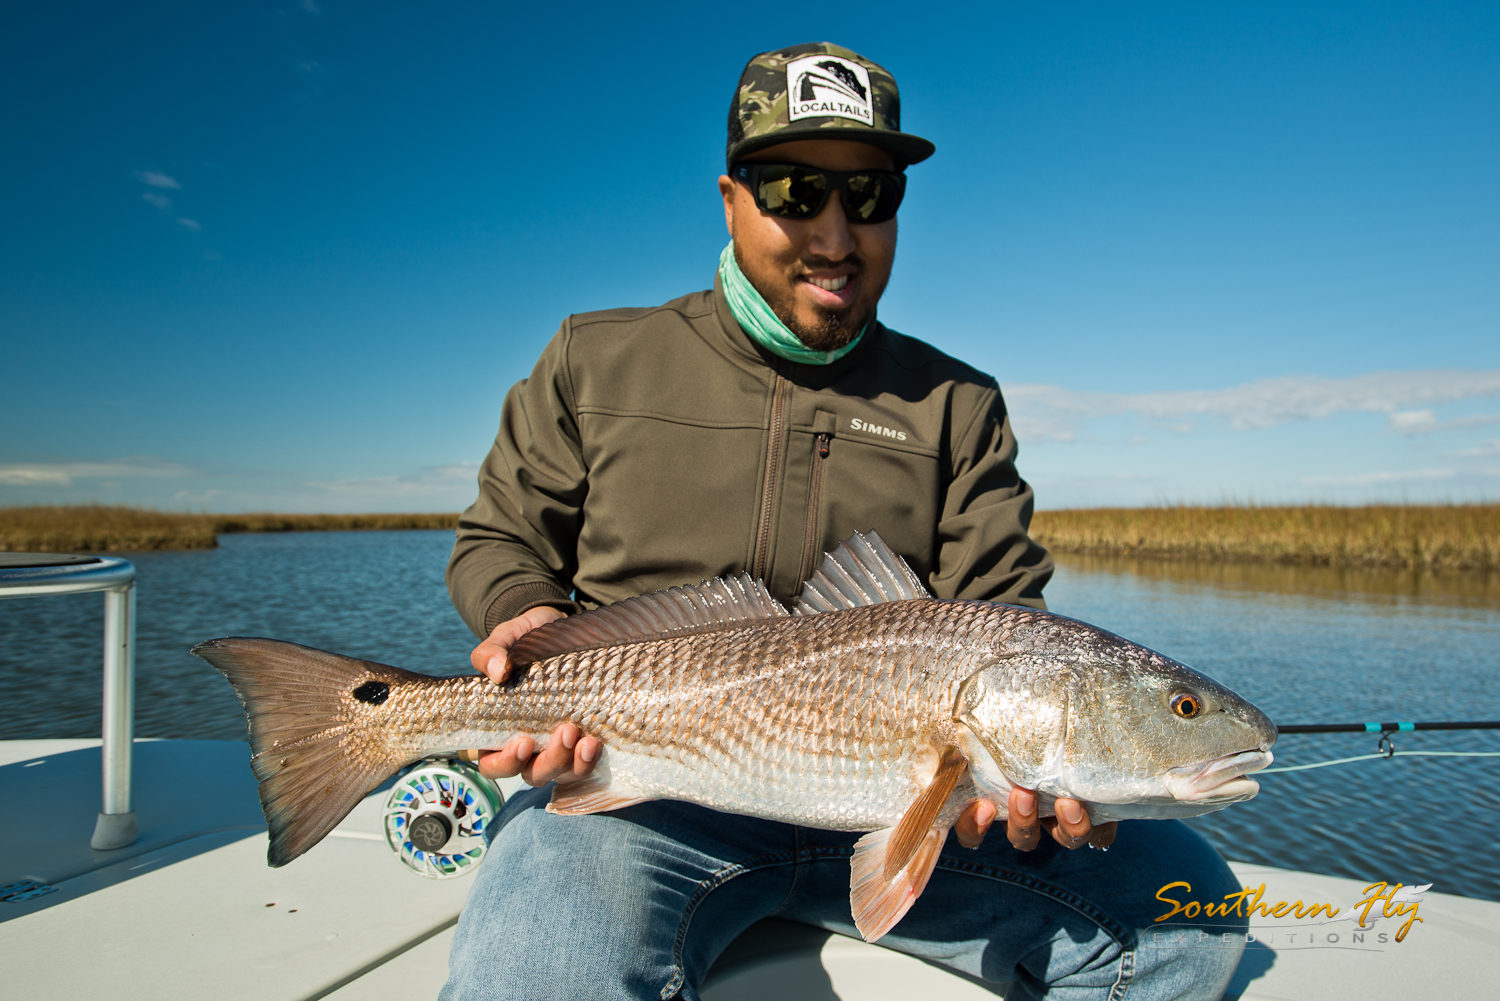 Fly Fishing Louisiana guides by Southern Fly Expeditions and Captain Brandon Keck